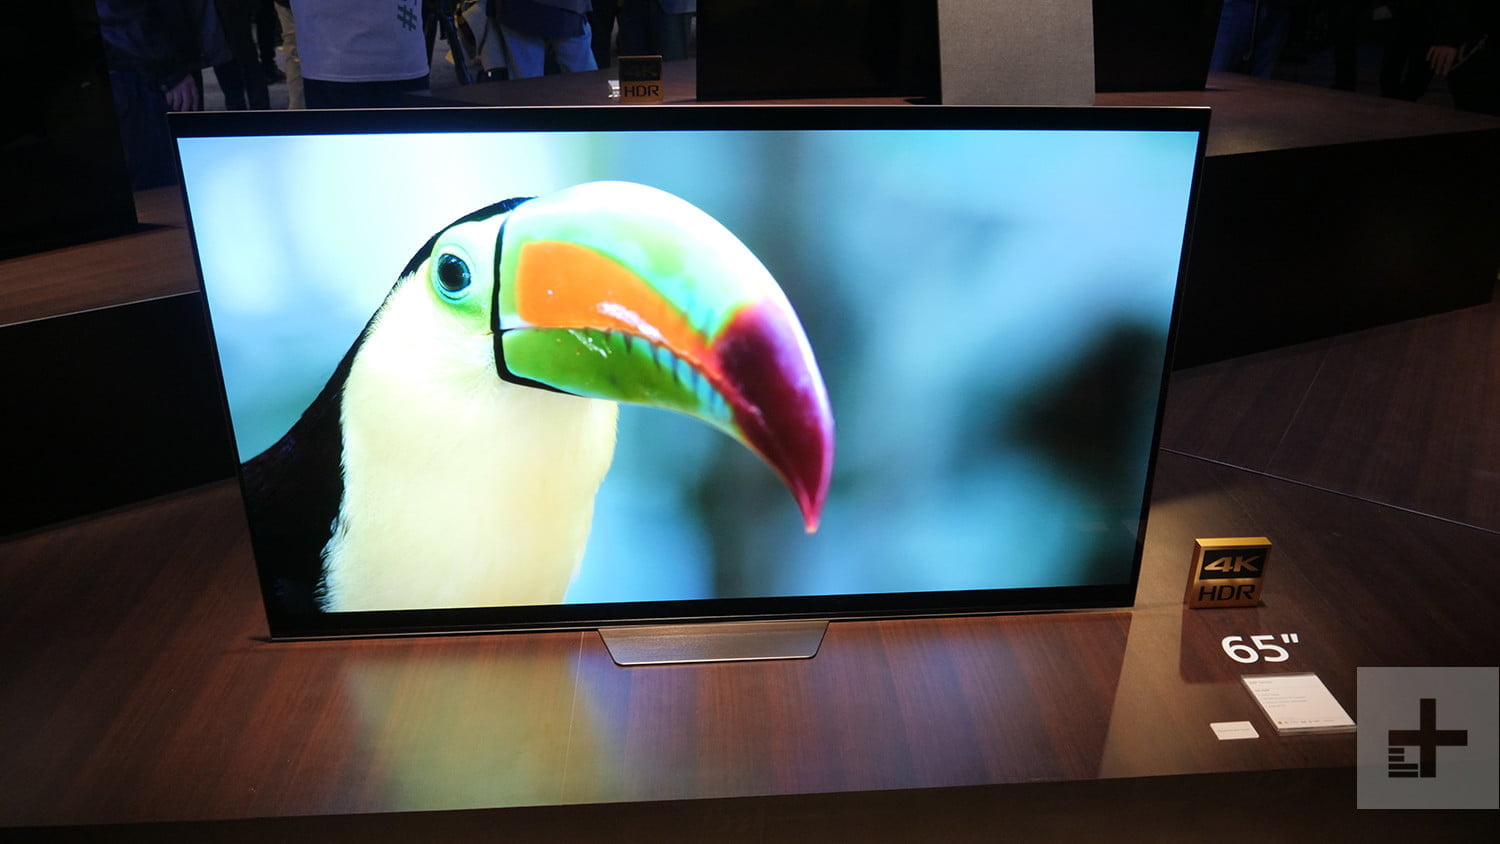 sony 85 inch 8k hdr tv 10000 nit a8f oled hands on series ces 2018 4